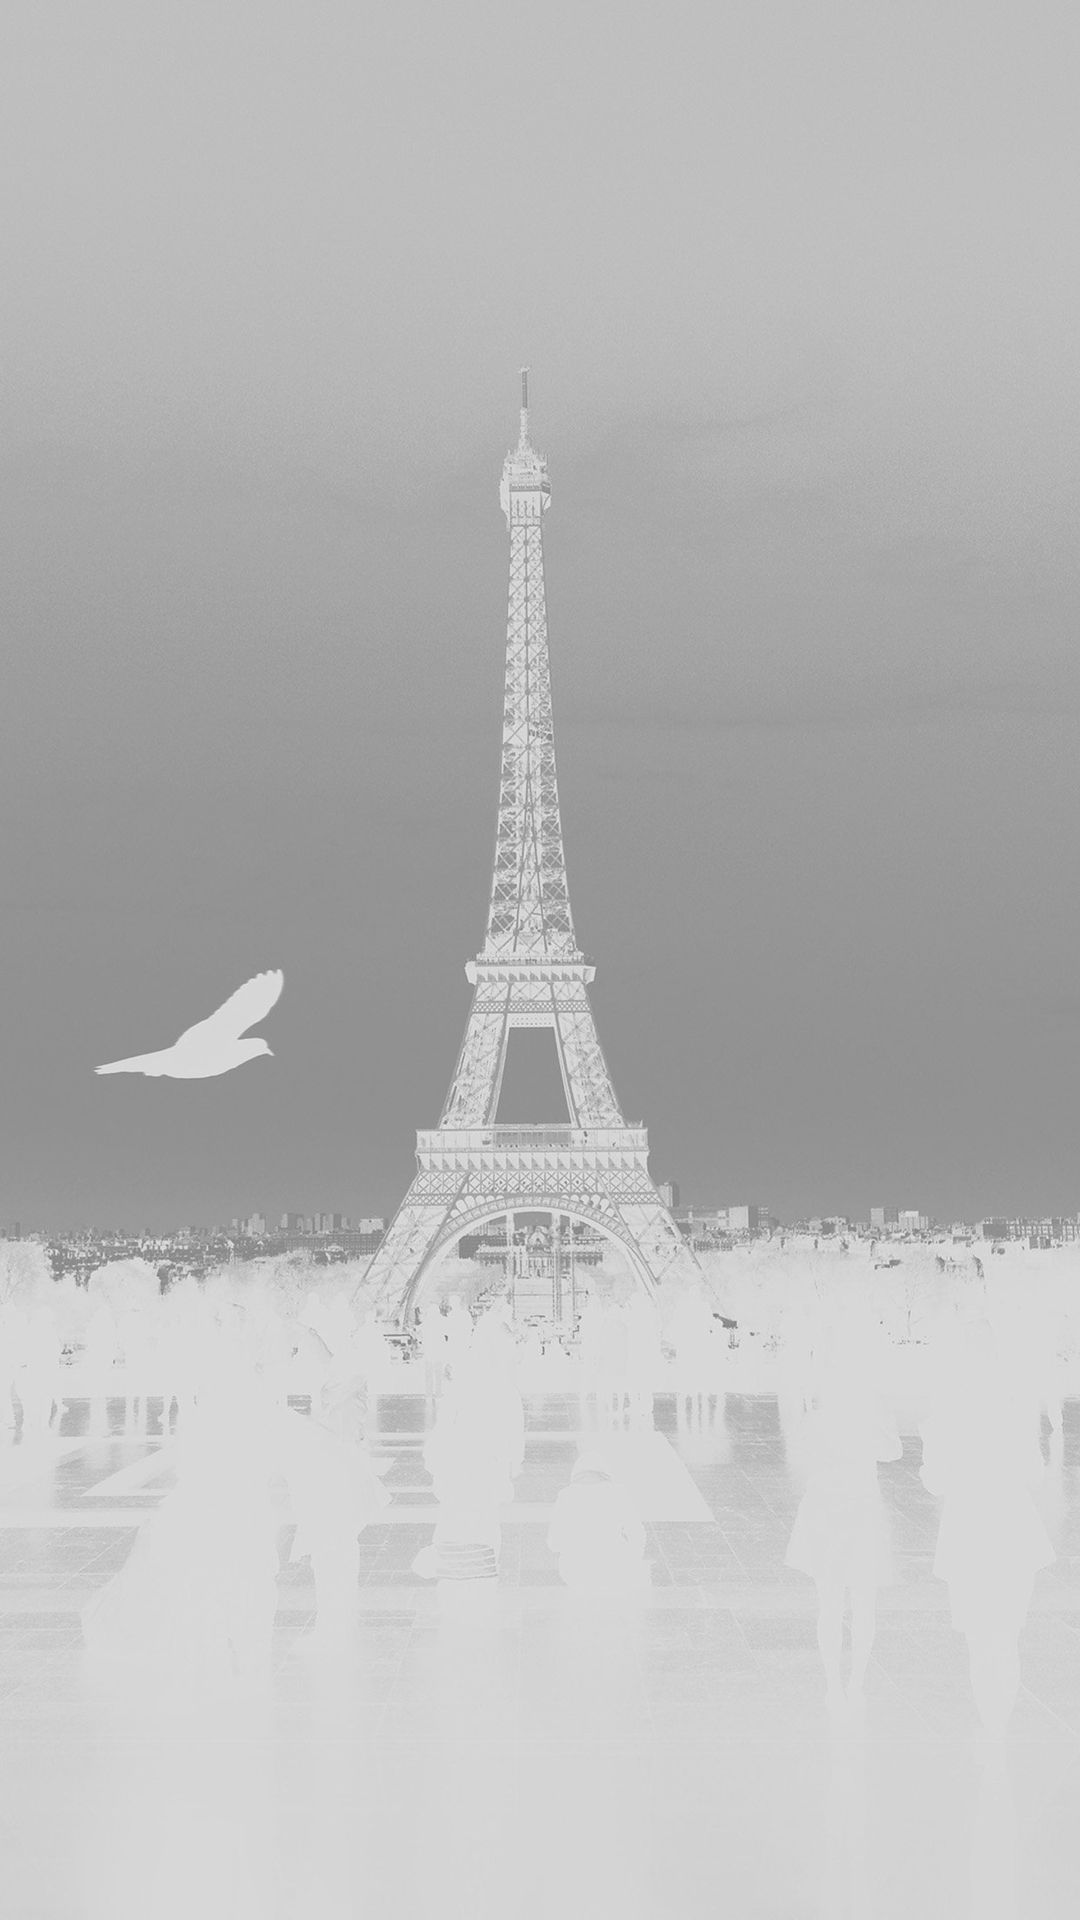 Paris Eiffel Tower Tour Dark Bird France White iPhone 6 plus